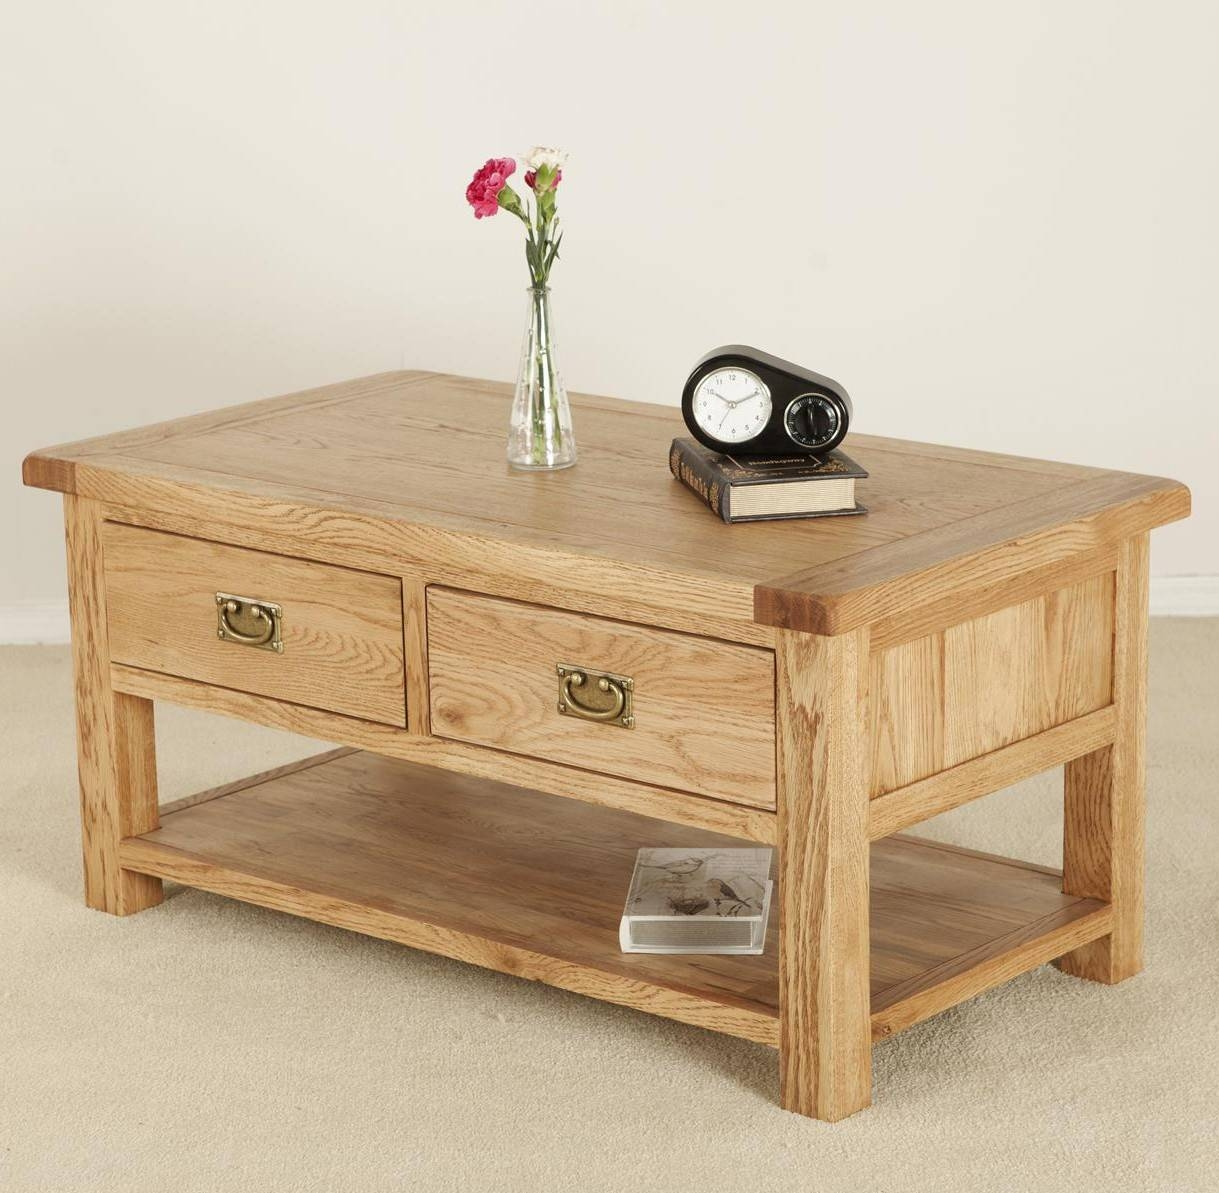 Solid Wood Coffee Tables With Drawers | Coffee Tables Decoration pertaining to Oak Coffee Table Sets (Image 27 of 30)